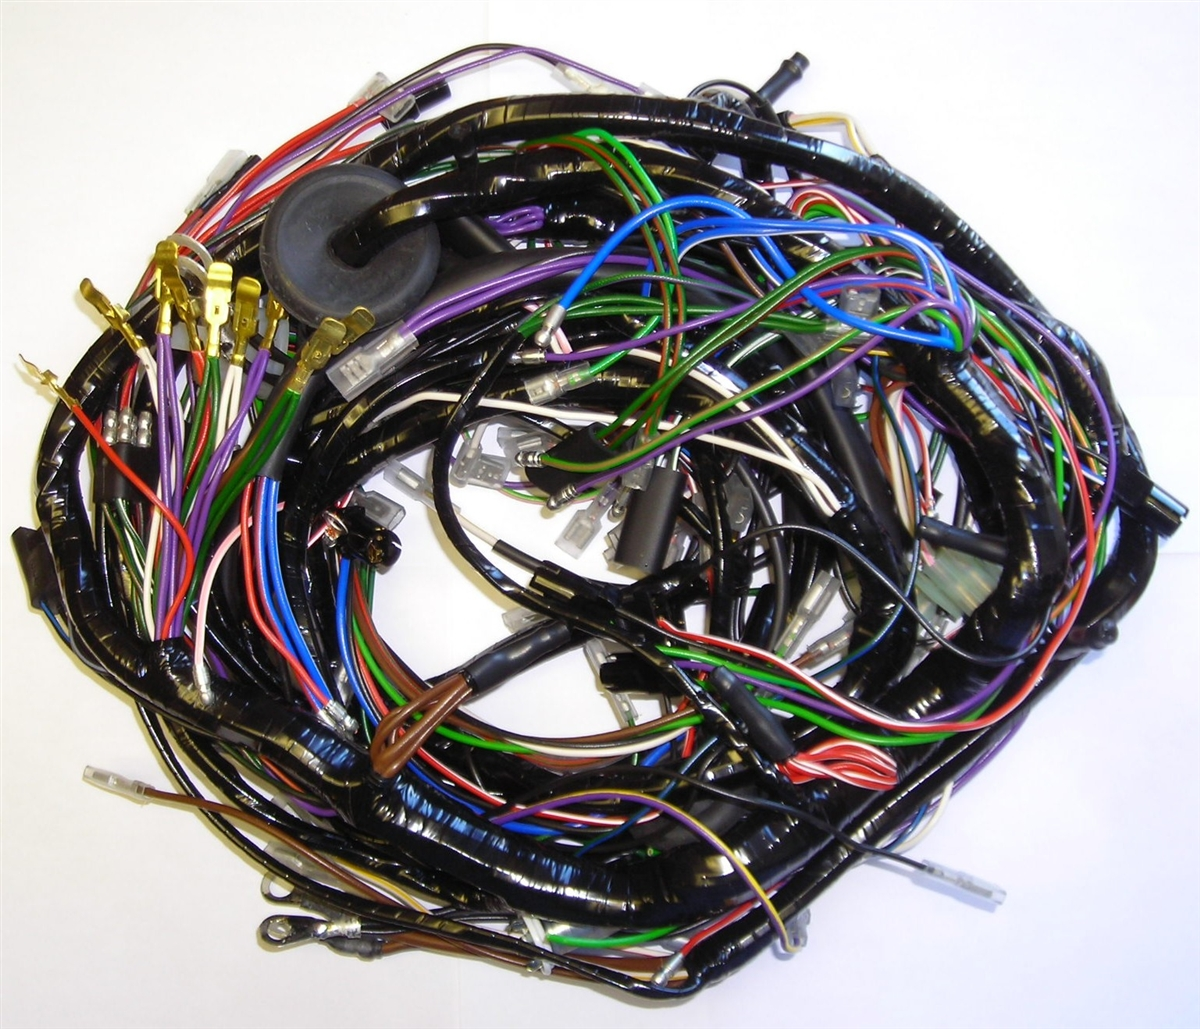 1523 2?1354101756 spitfire 1500 main wiring harness Wiring Harness Wiring- Diagram at n-0.co